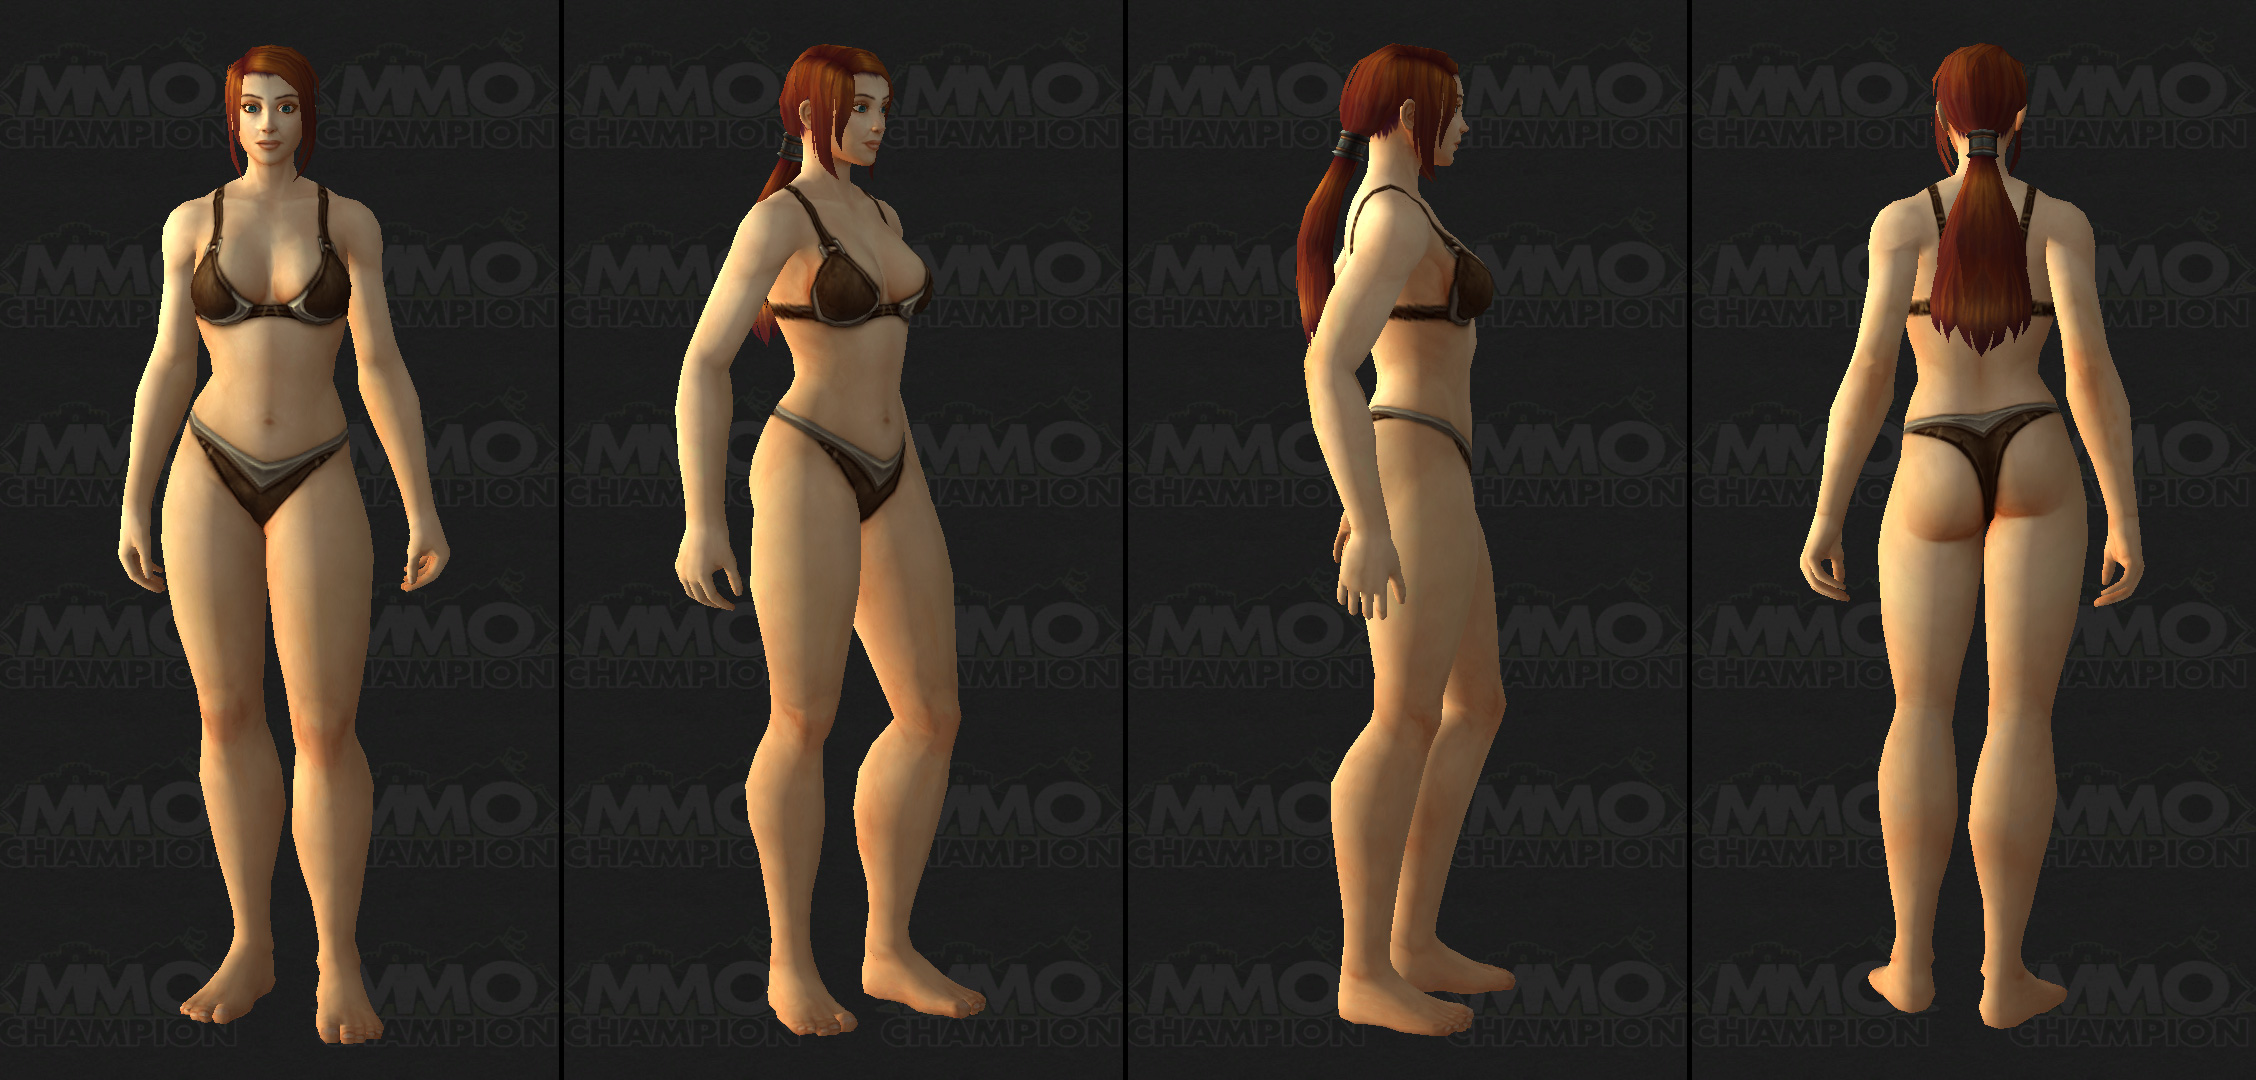 Warcraft draenei and human sex images